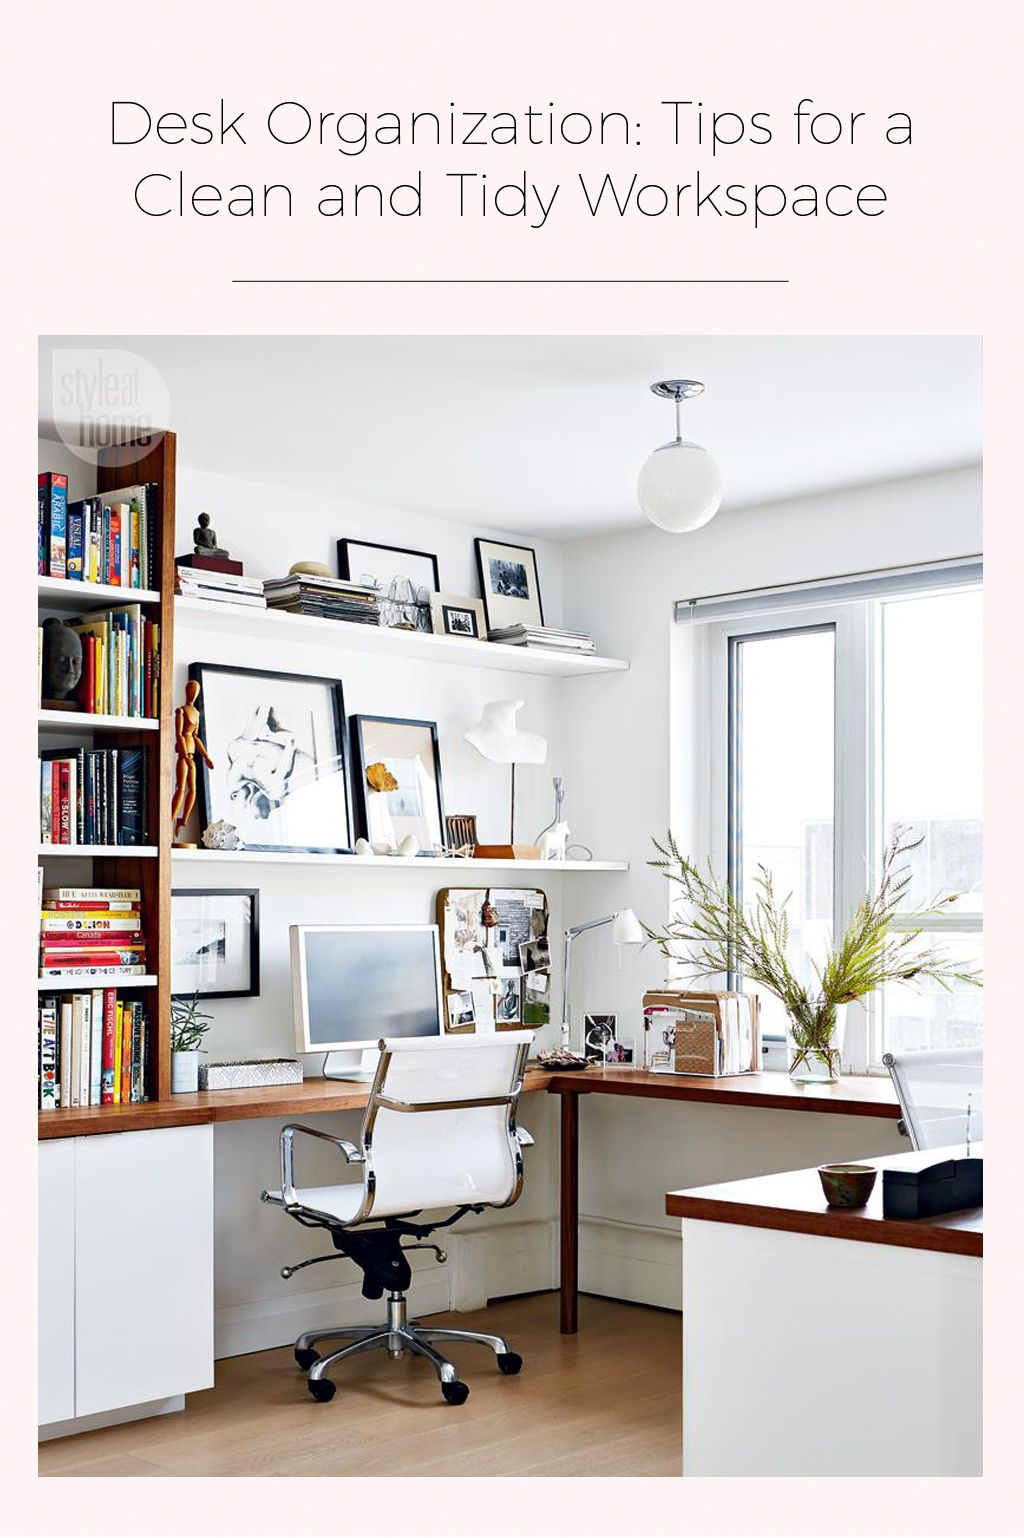 Desk Organization: Tips for a Clean and Tidy Workspace | Room ...